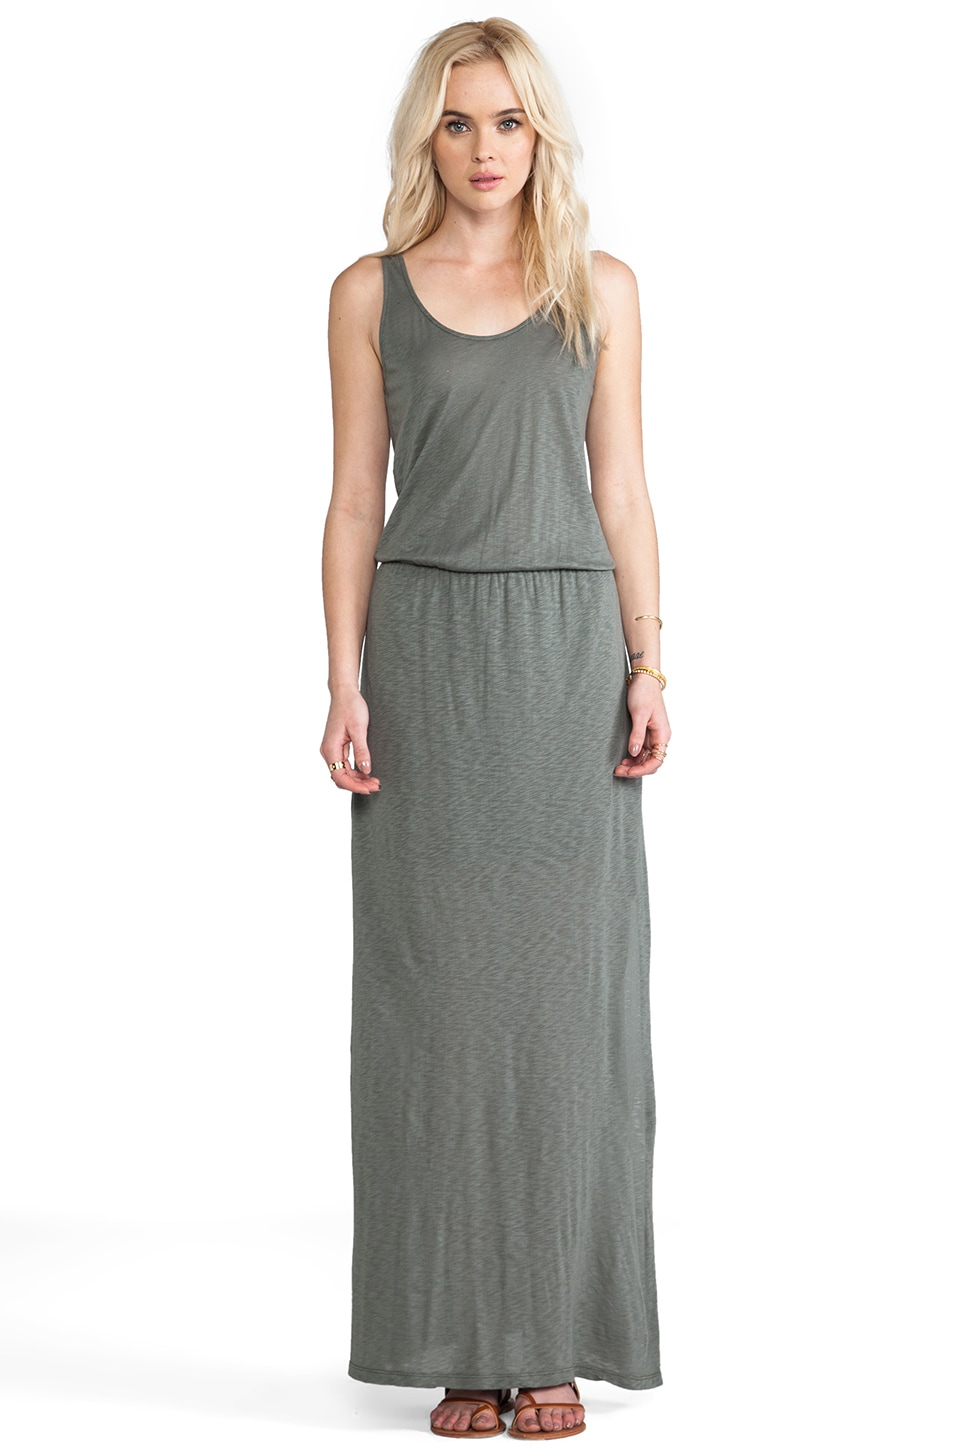 Splendid Maxi Dress in Olive Green